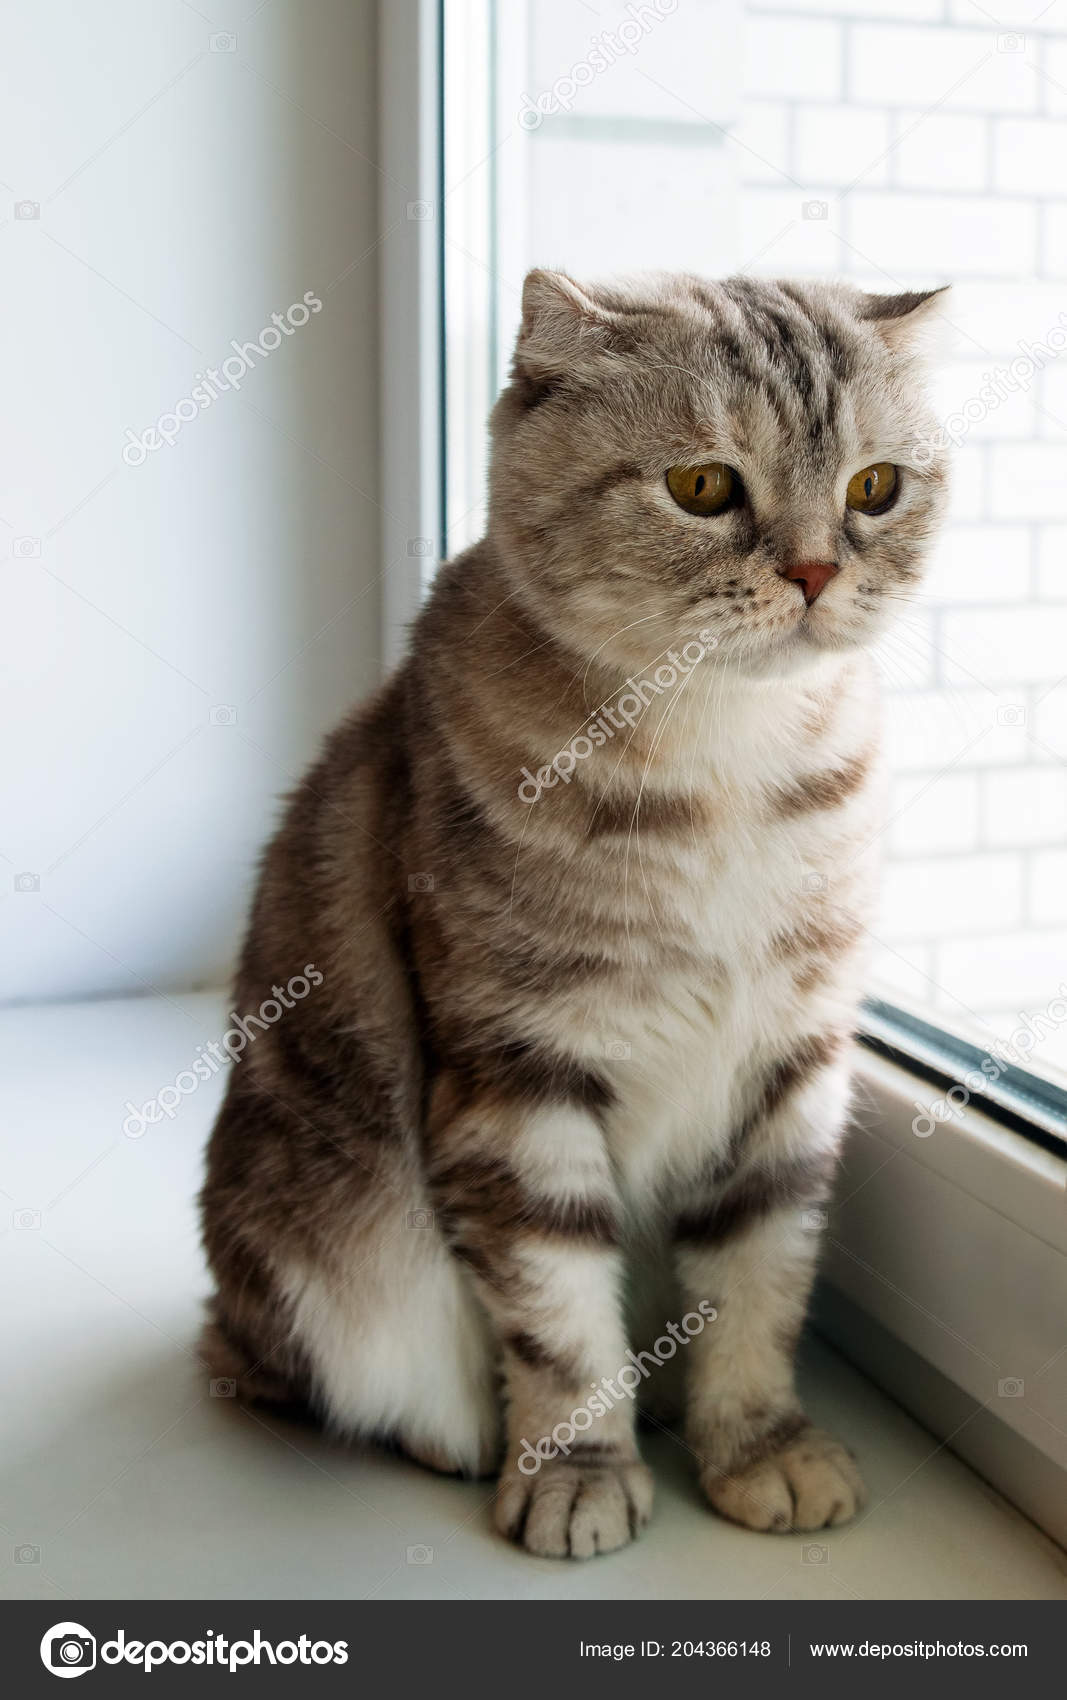 Adorable Fluffy Gray Tabby Scottish Fold Cat Yellow Eyes Looking